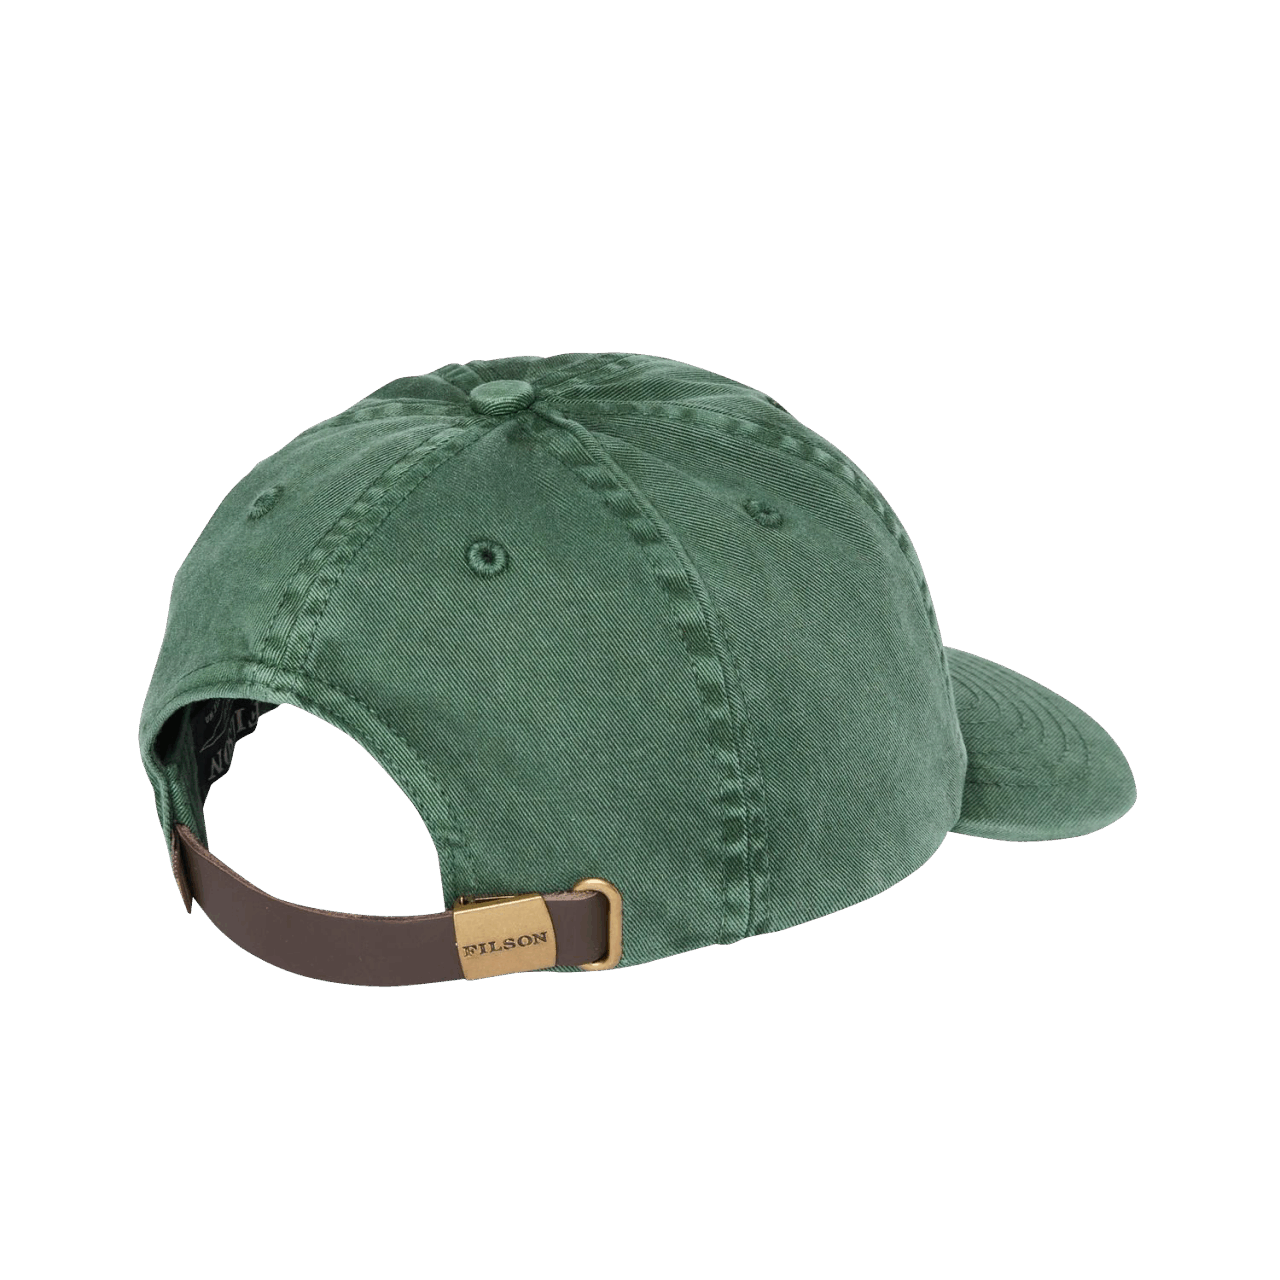 Filson Washed Low-Profile Cap - green